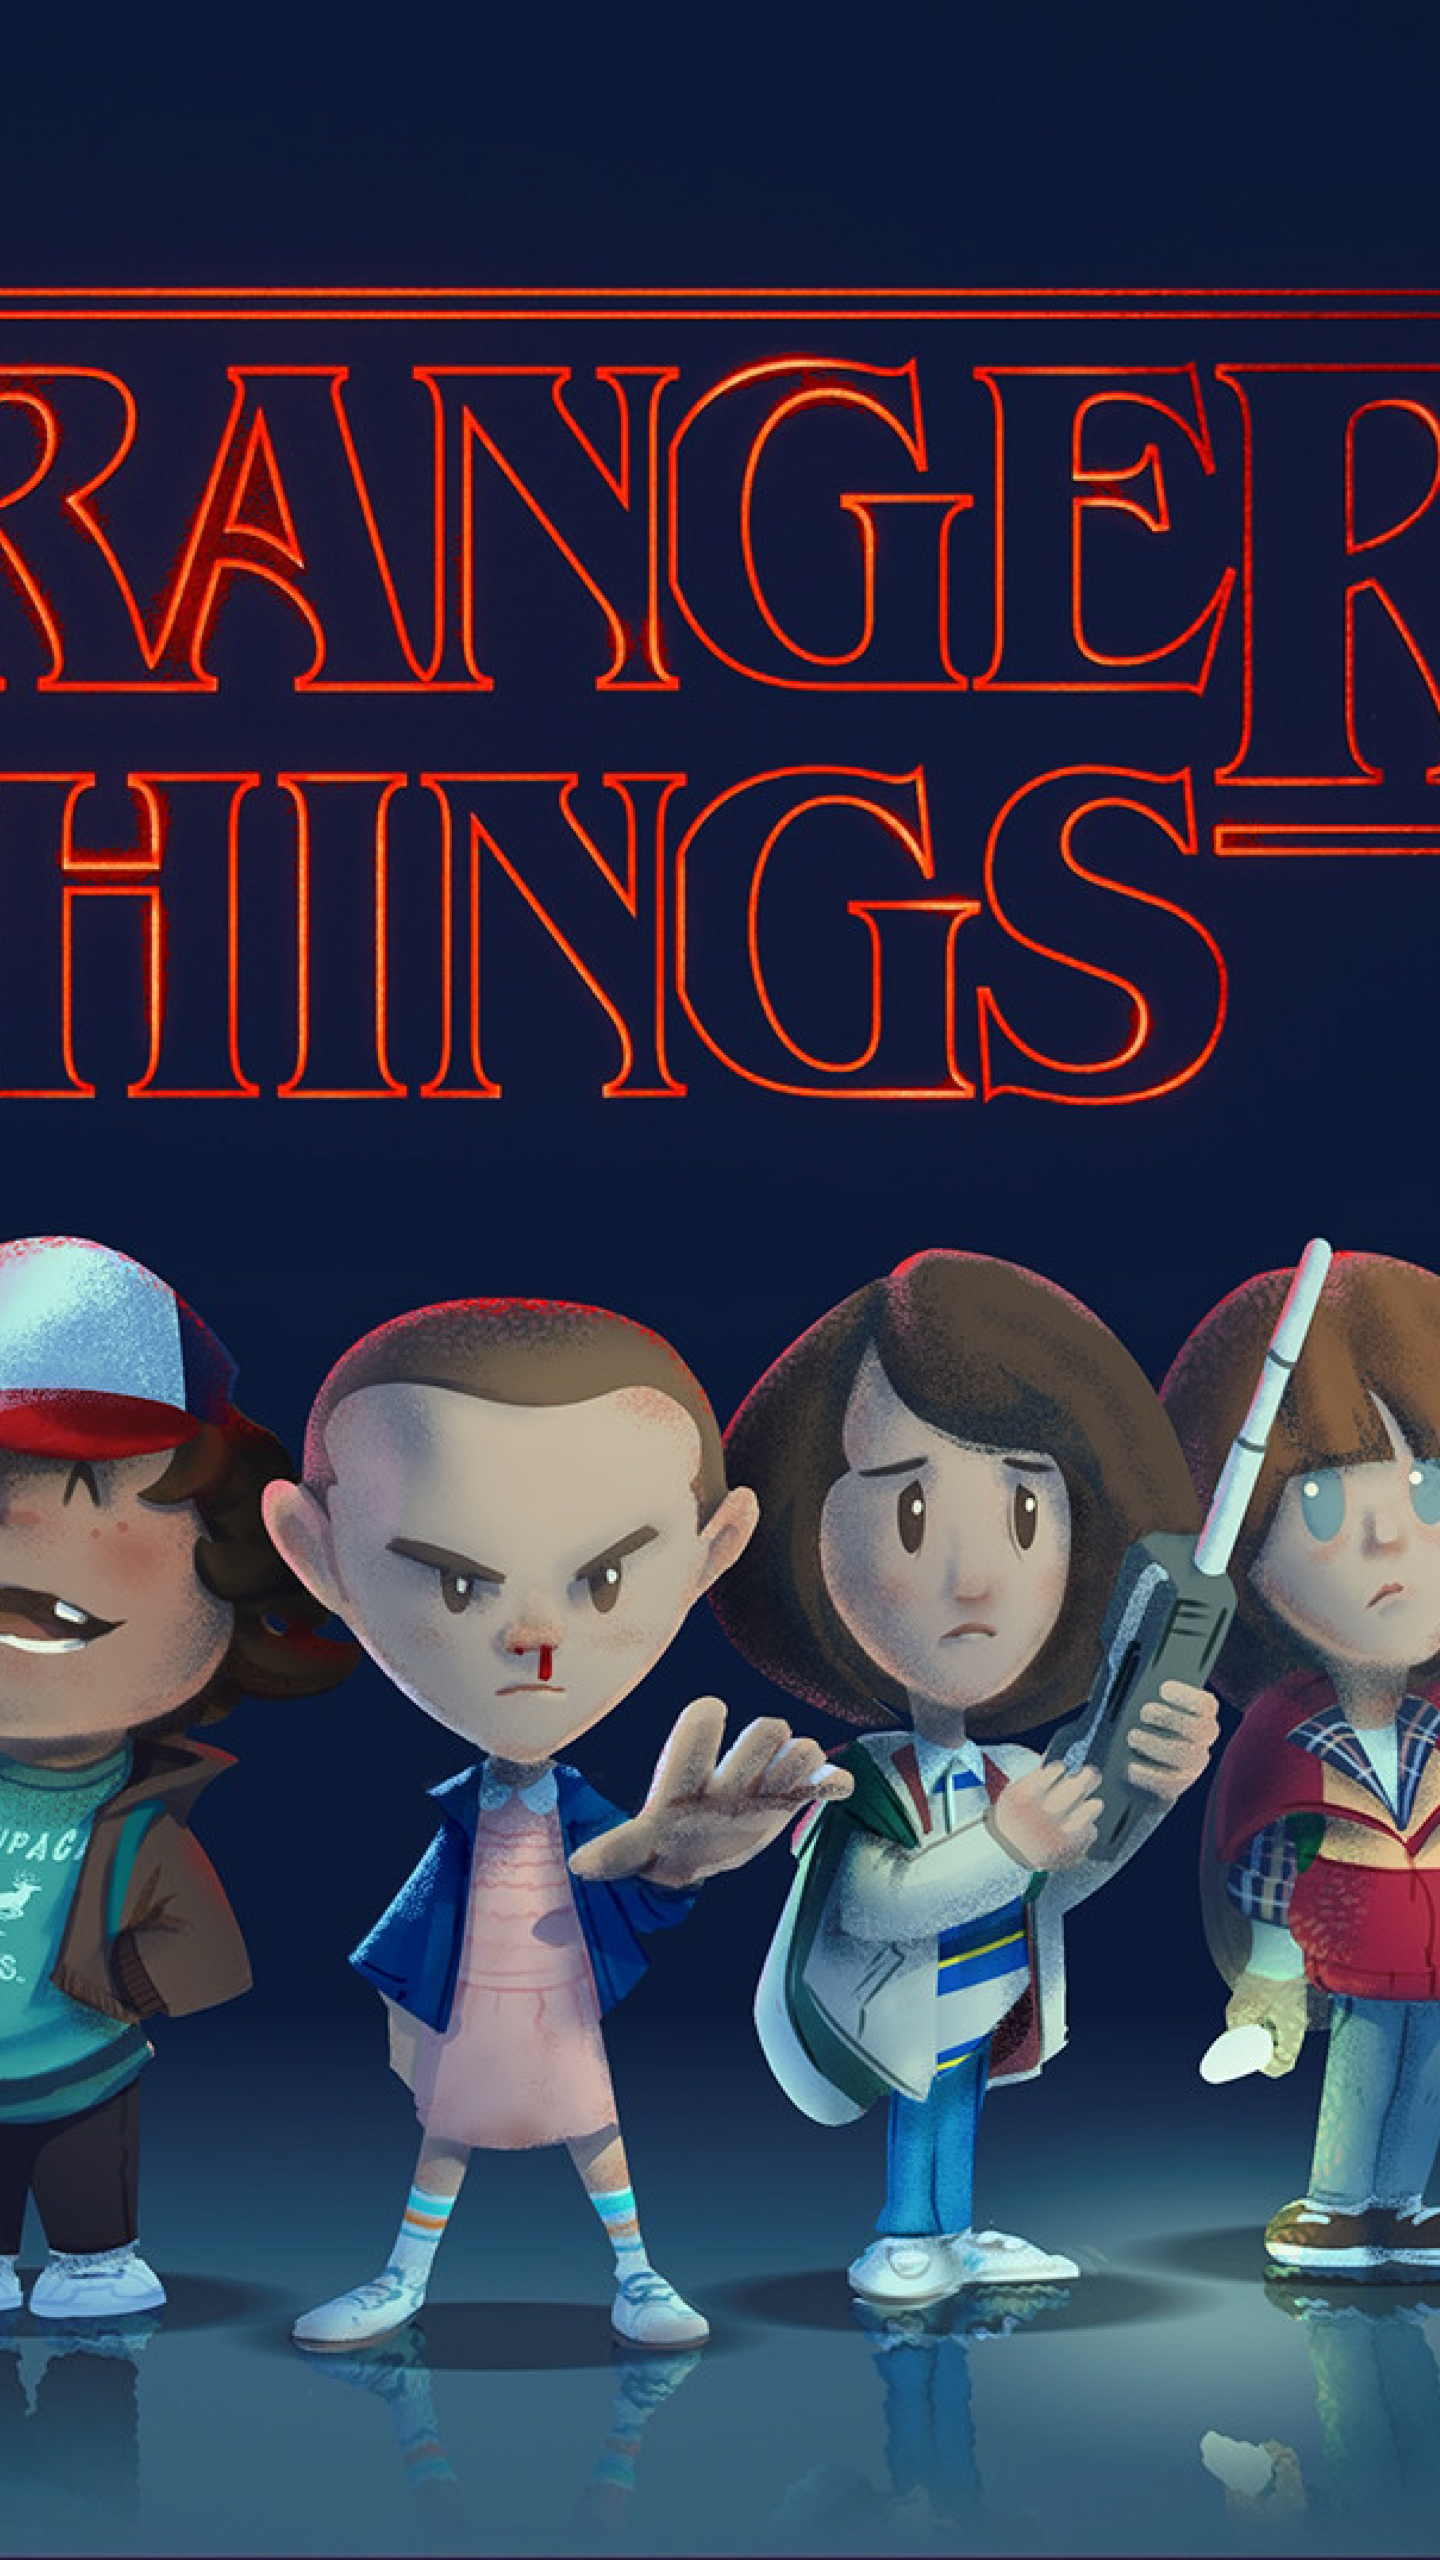 Download stranger things fan art 1440x2560 resolution - Fan wallpaper download ...